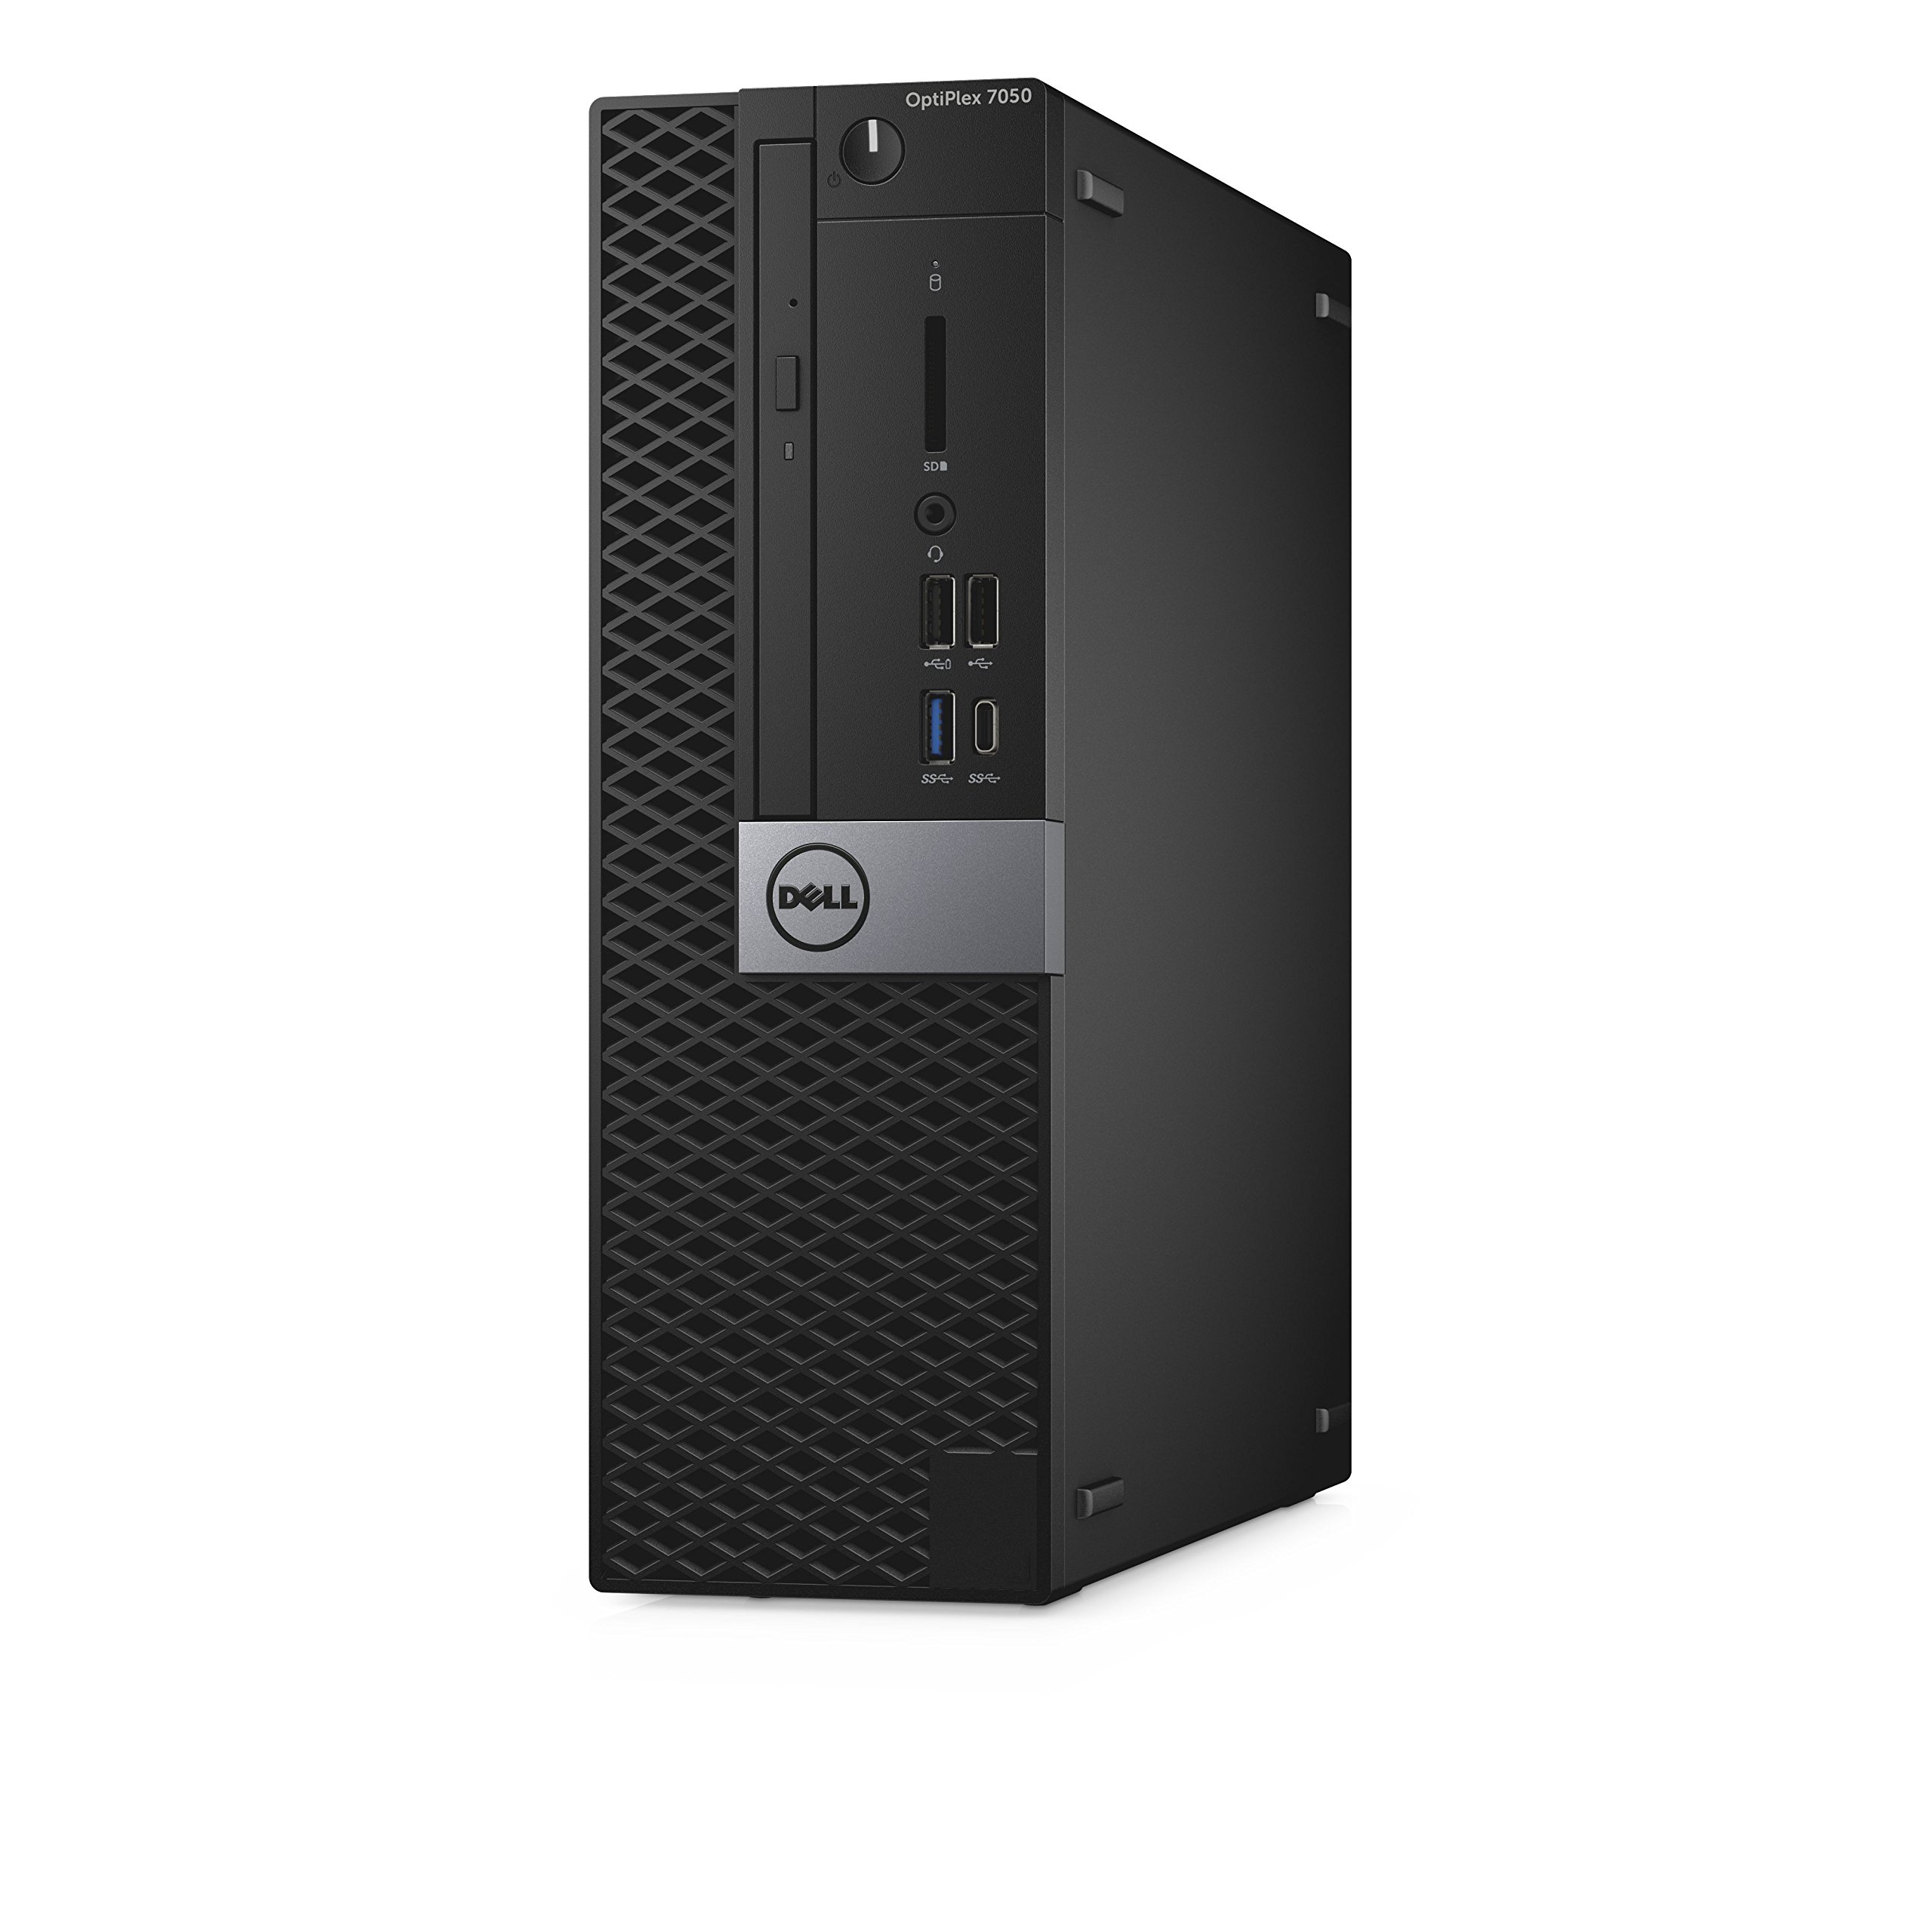 Dell OptiPlex 7050 Small Form Factor Desktop Computer, Intel Core i7-7700, 16GB DDR4, 256GB Solid State Drive, Windows 10 Pro (XNDVW) by Dell